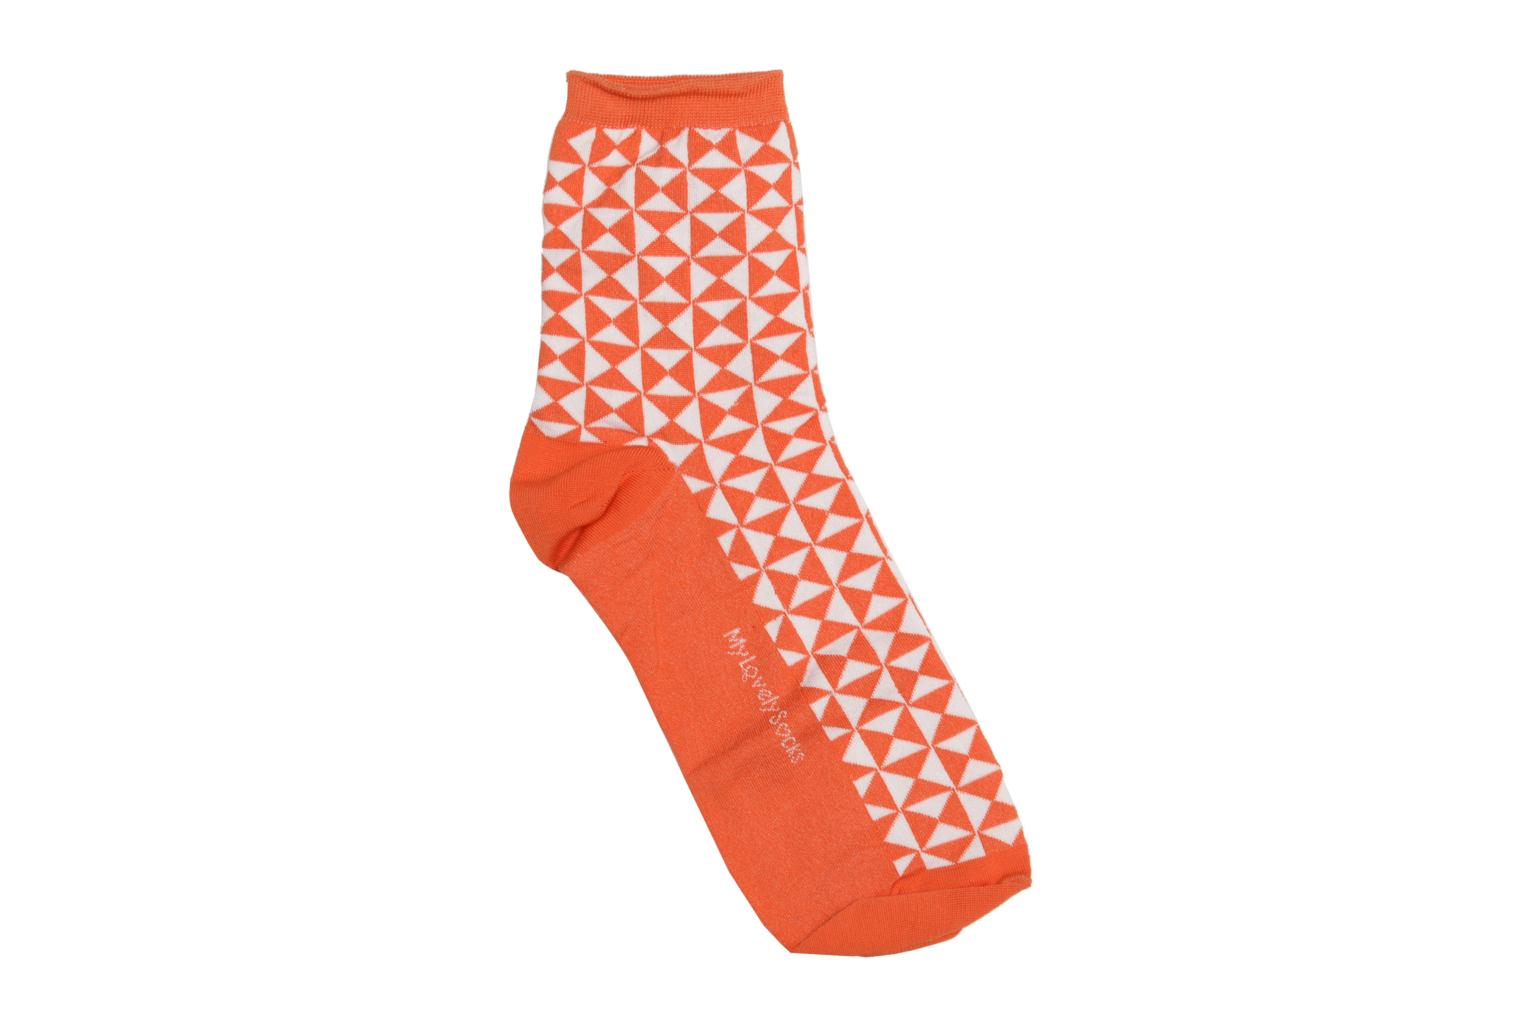 Socken Marthe Pop Orange